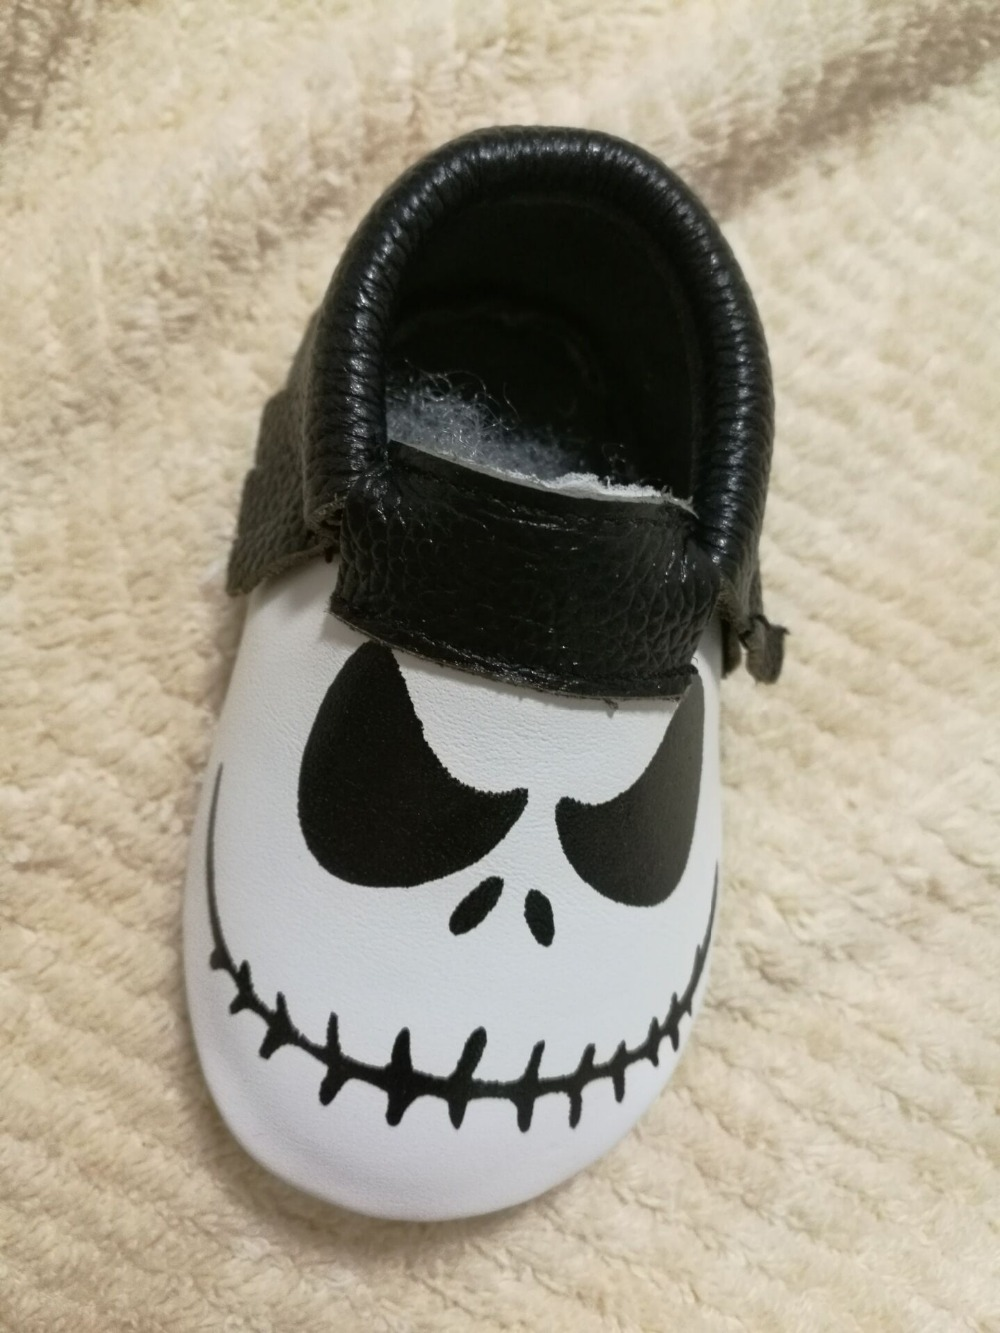 New-Stylish-Genuine-Leather-Baby-Moccasins-Shoes-Halloween-presents-for-bebe-Baby-Shoes-Newborn-first-walker (1)